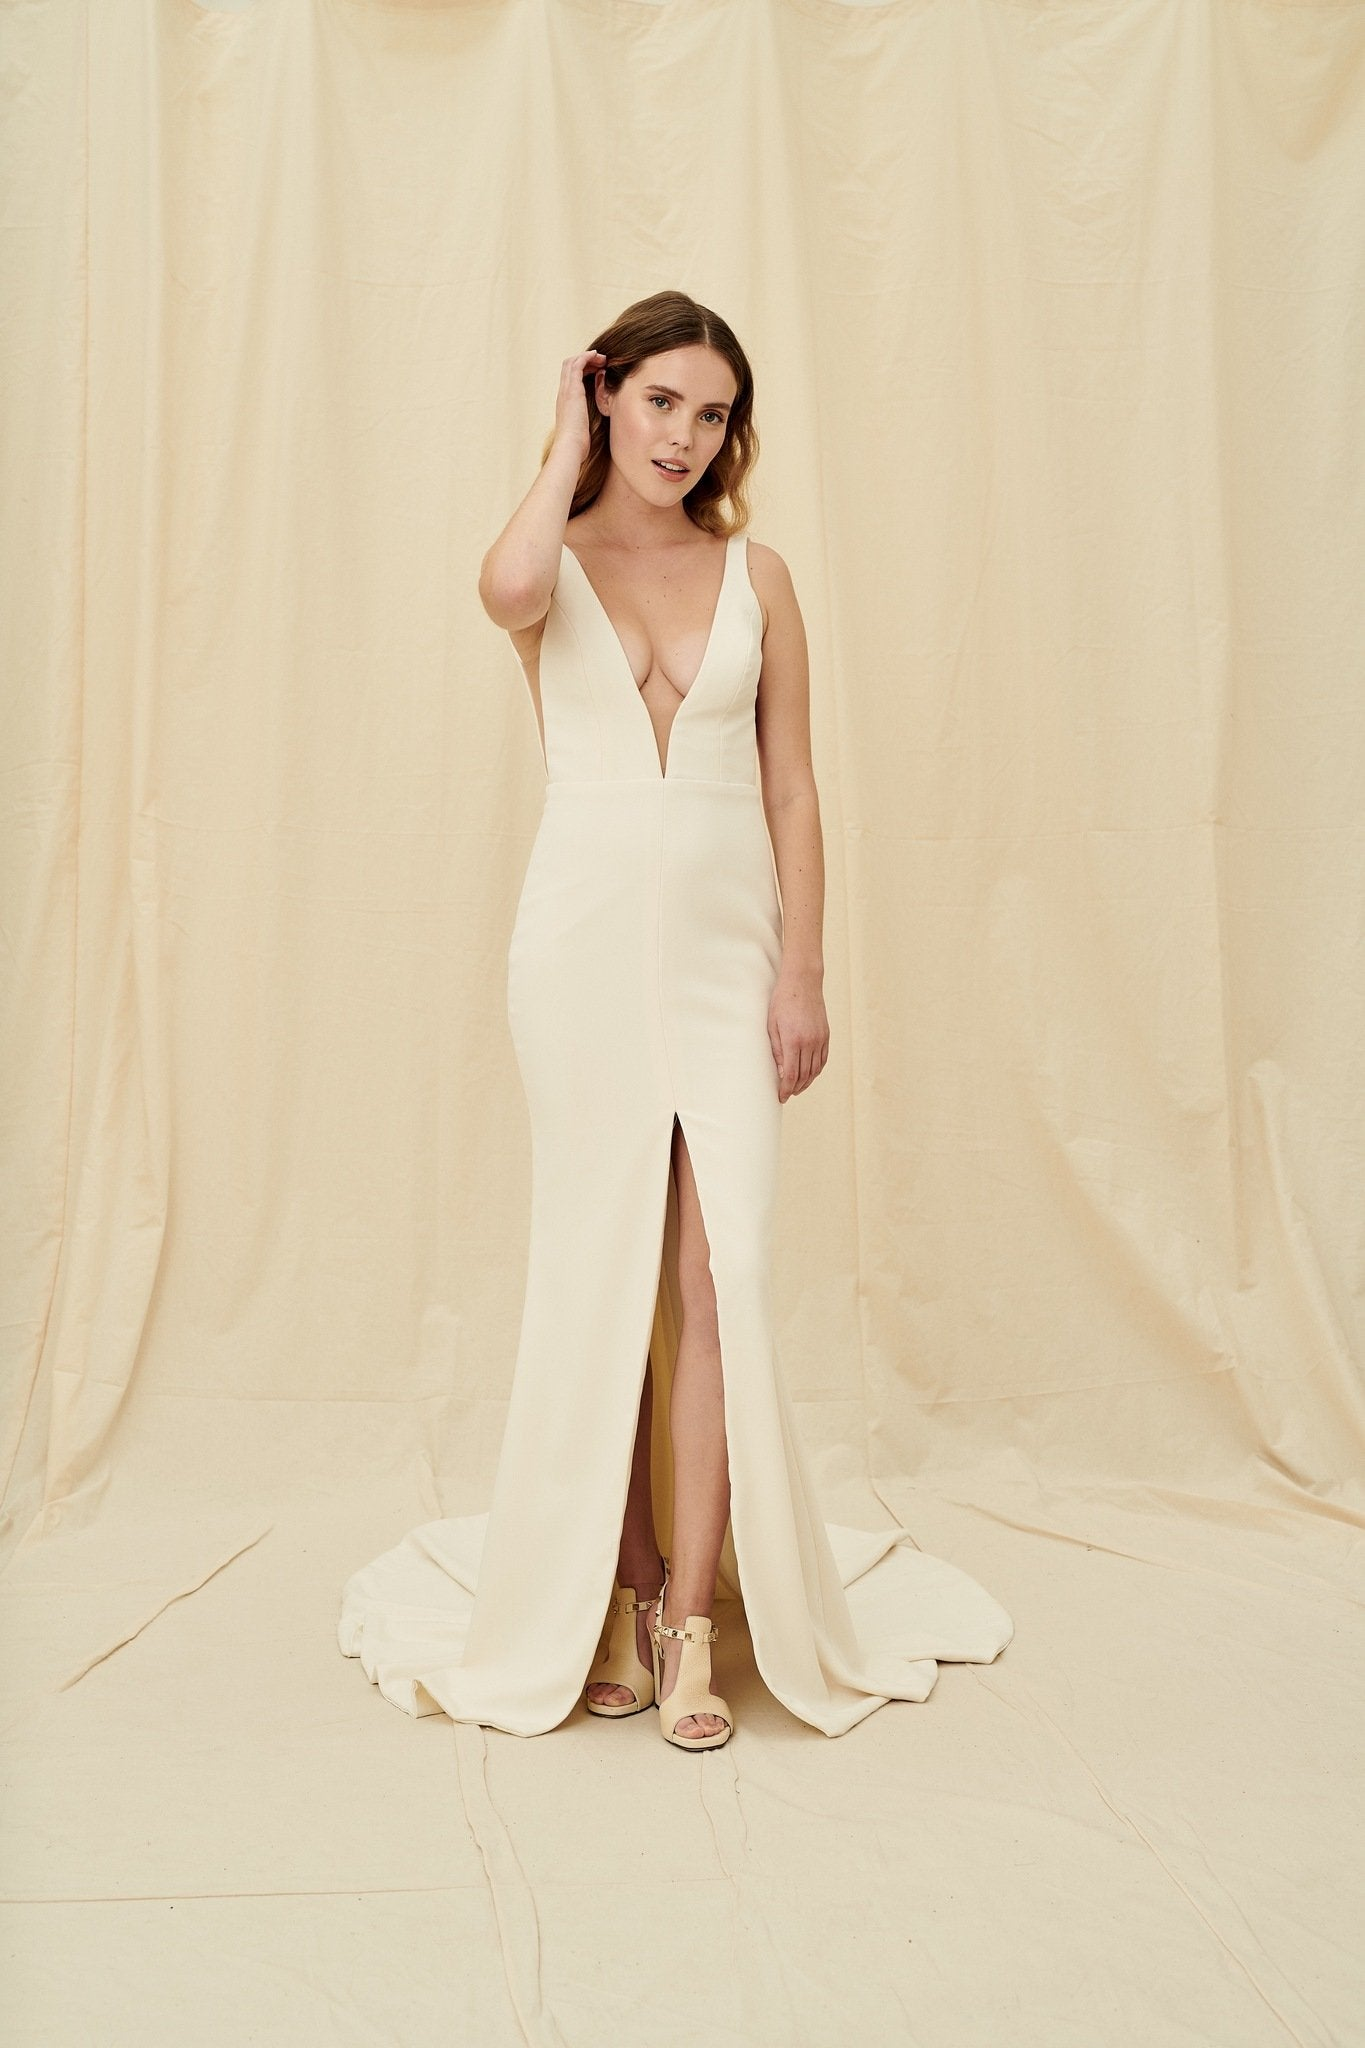 Simple crepe wedding dress with a low back and a centre slit skirt